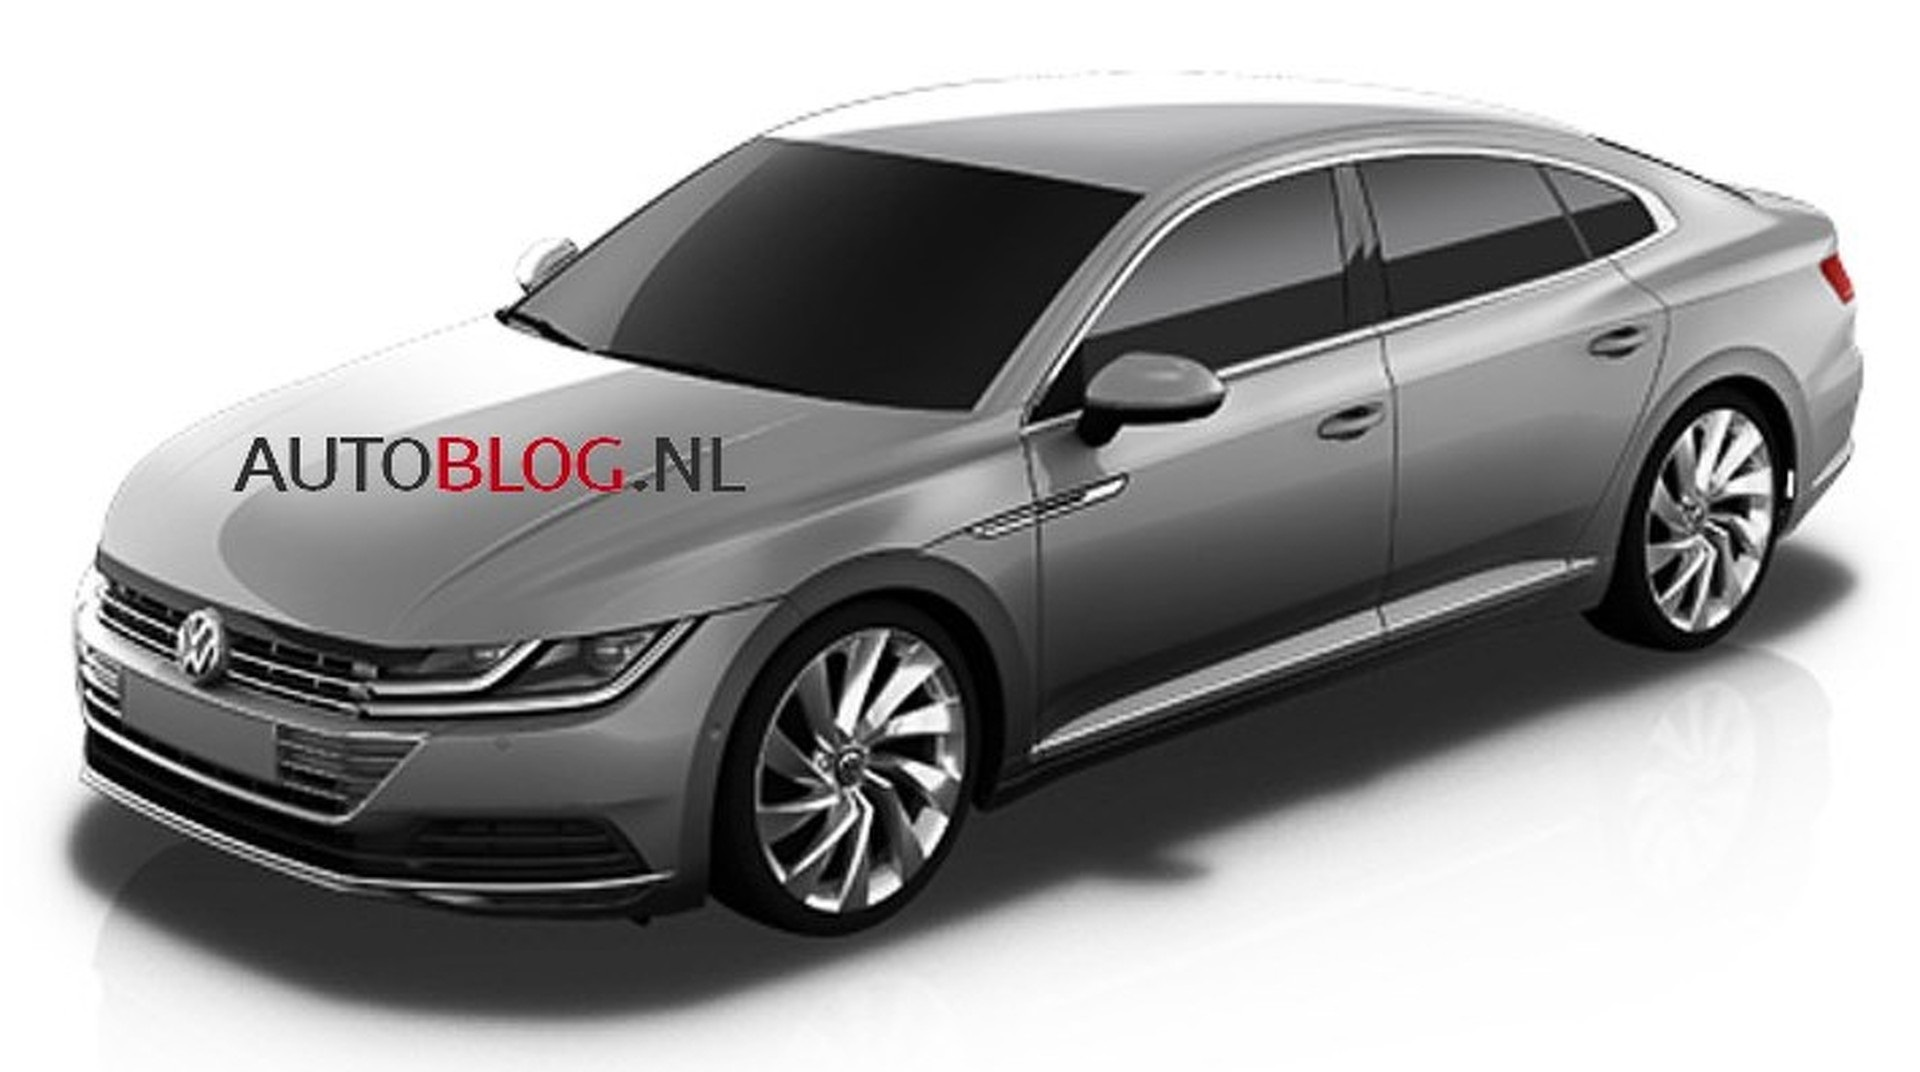 ��� ����� ������ �� VW Group: ��� ����� ��������� ����� VW Passat CC � Skoda Octavia [����� 1]